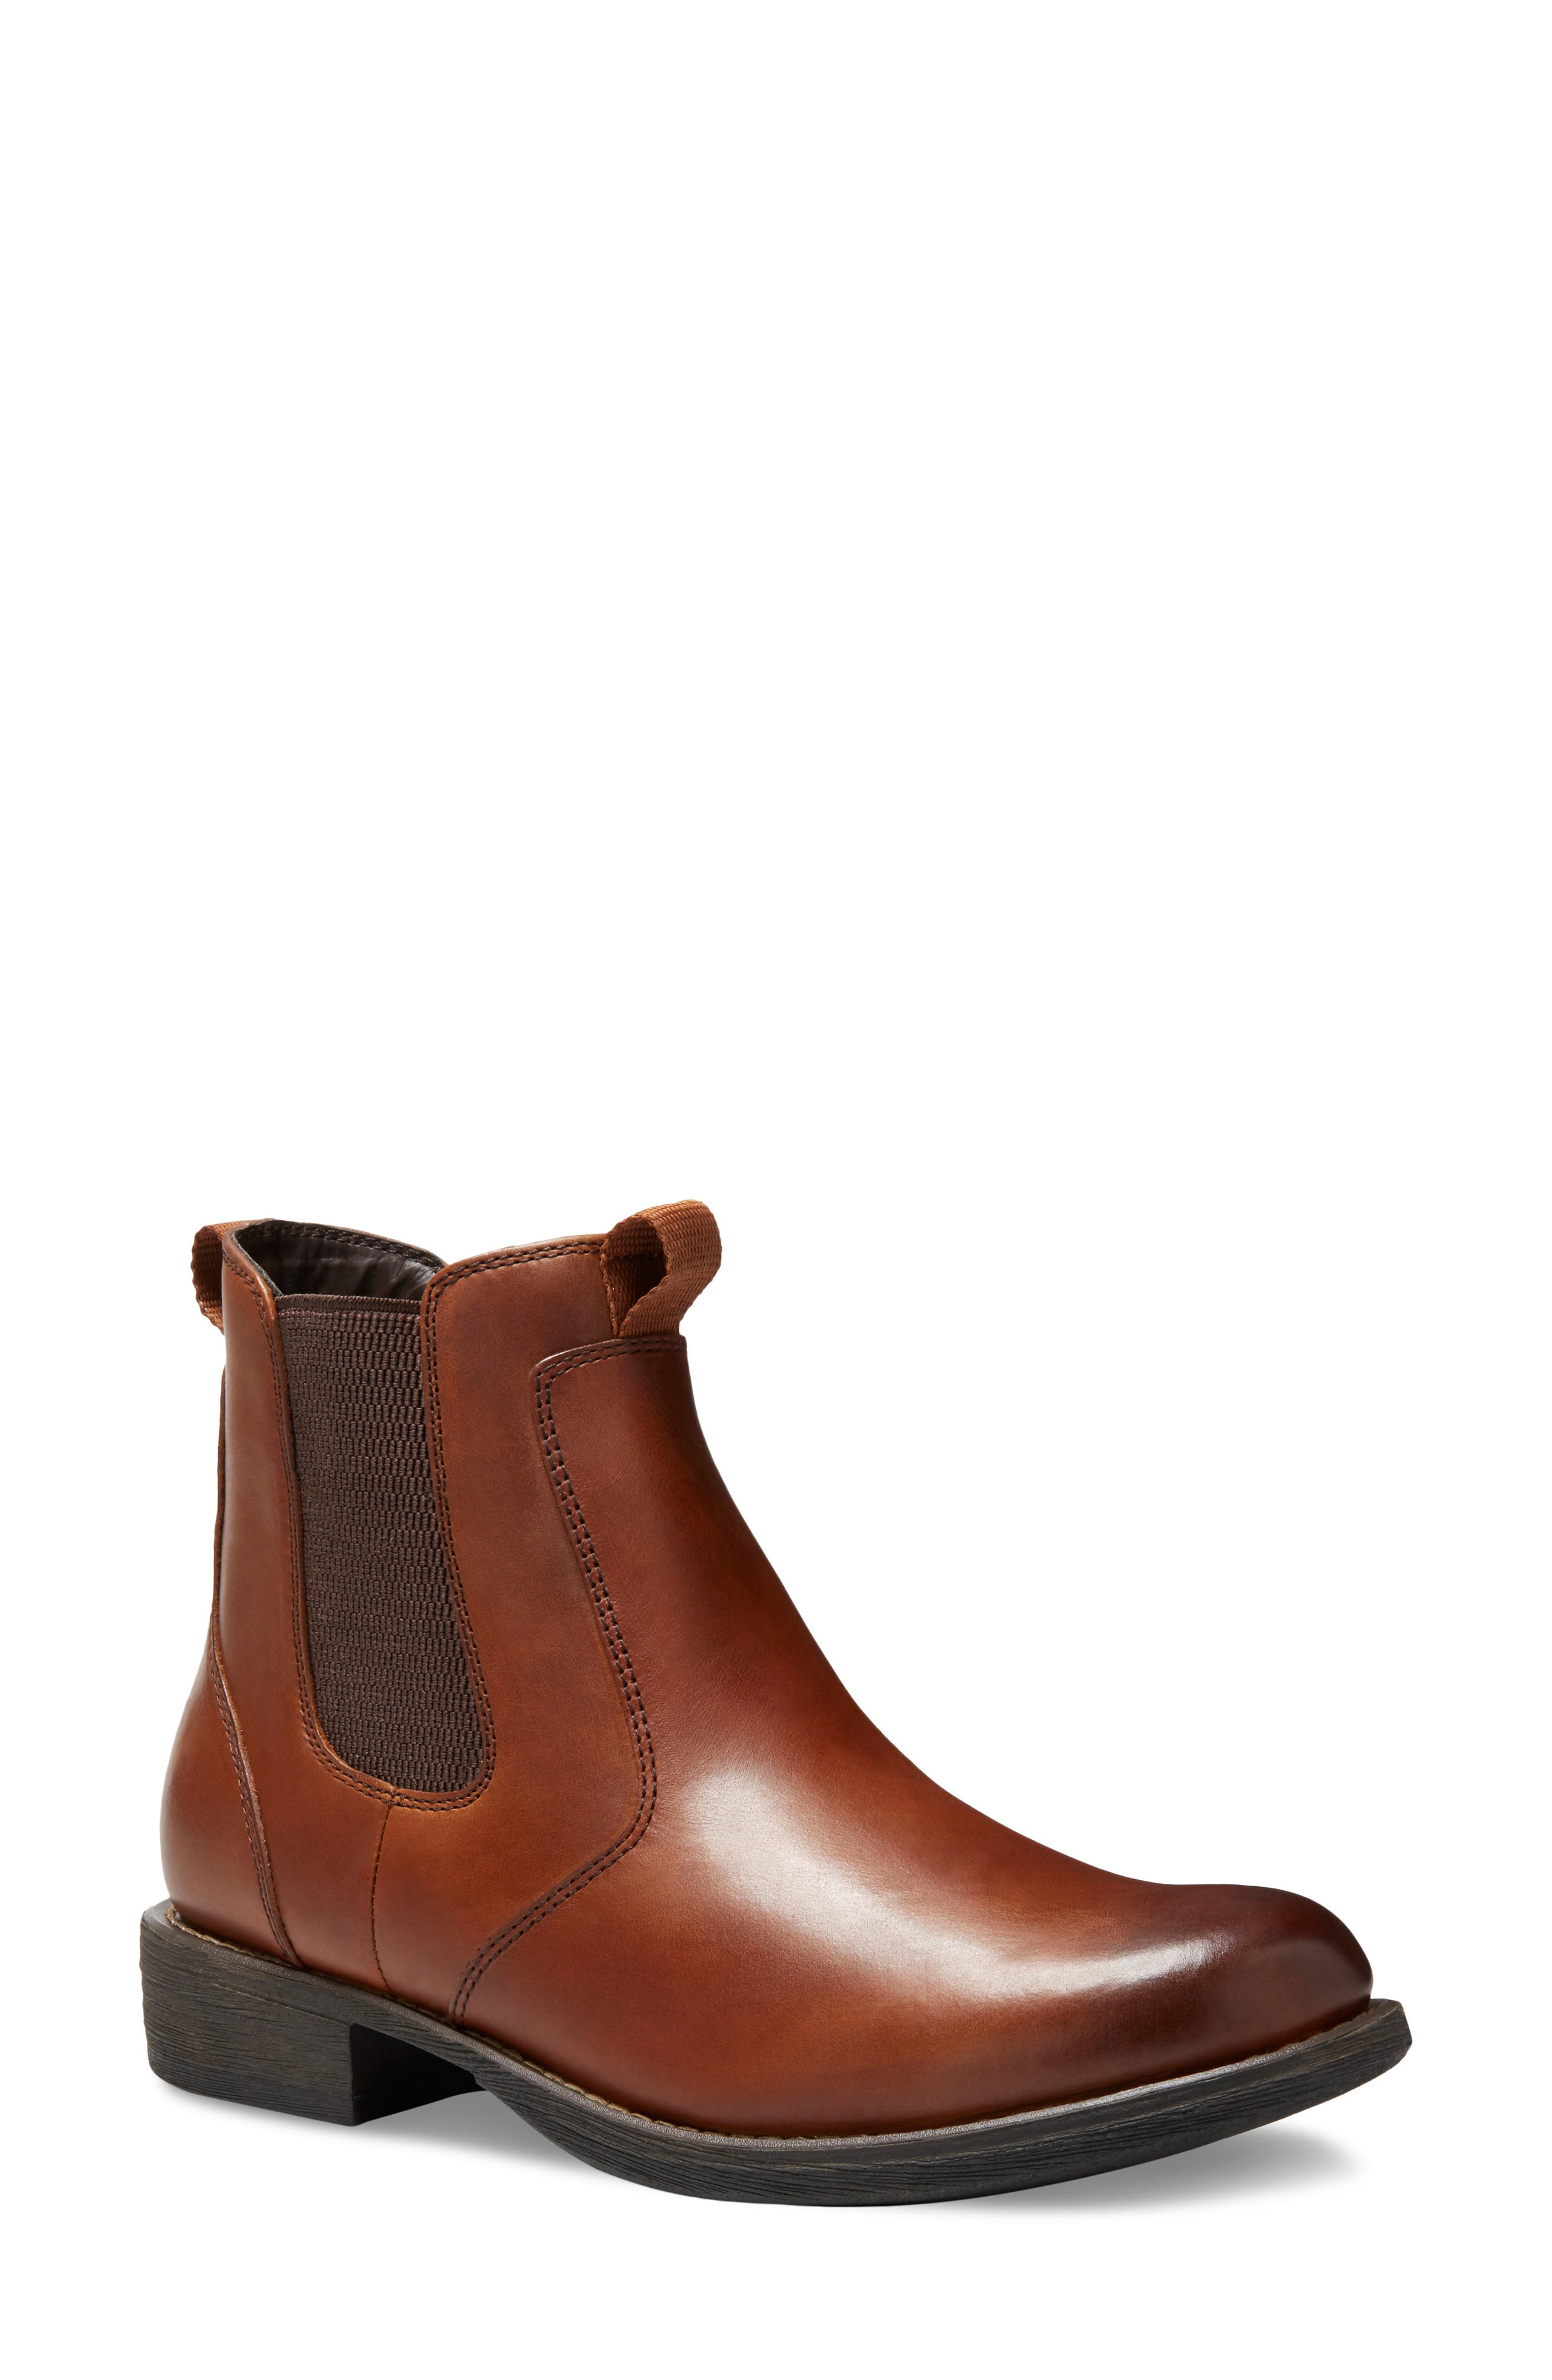 Daily Double Leather Chelsea Boot